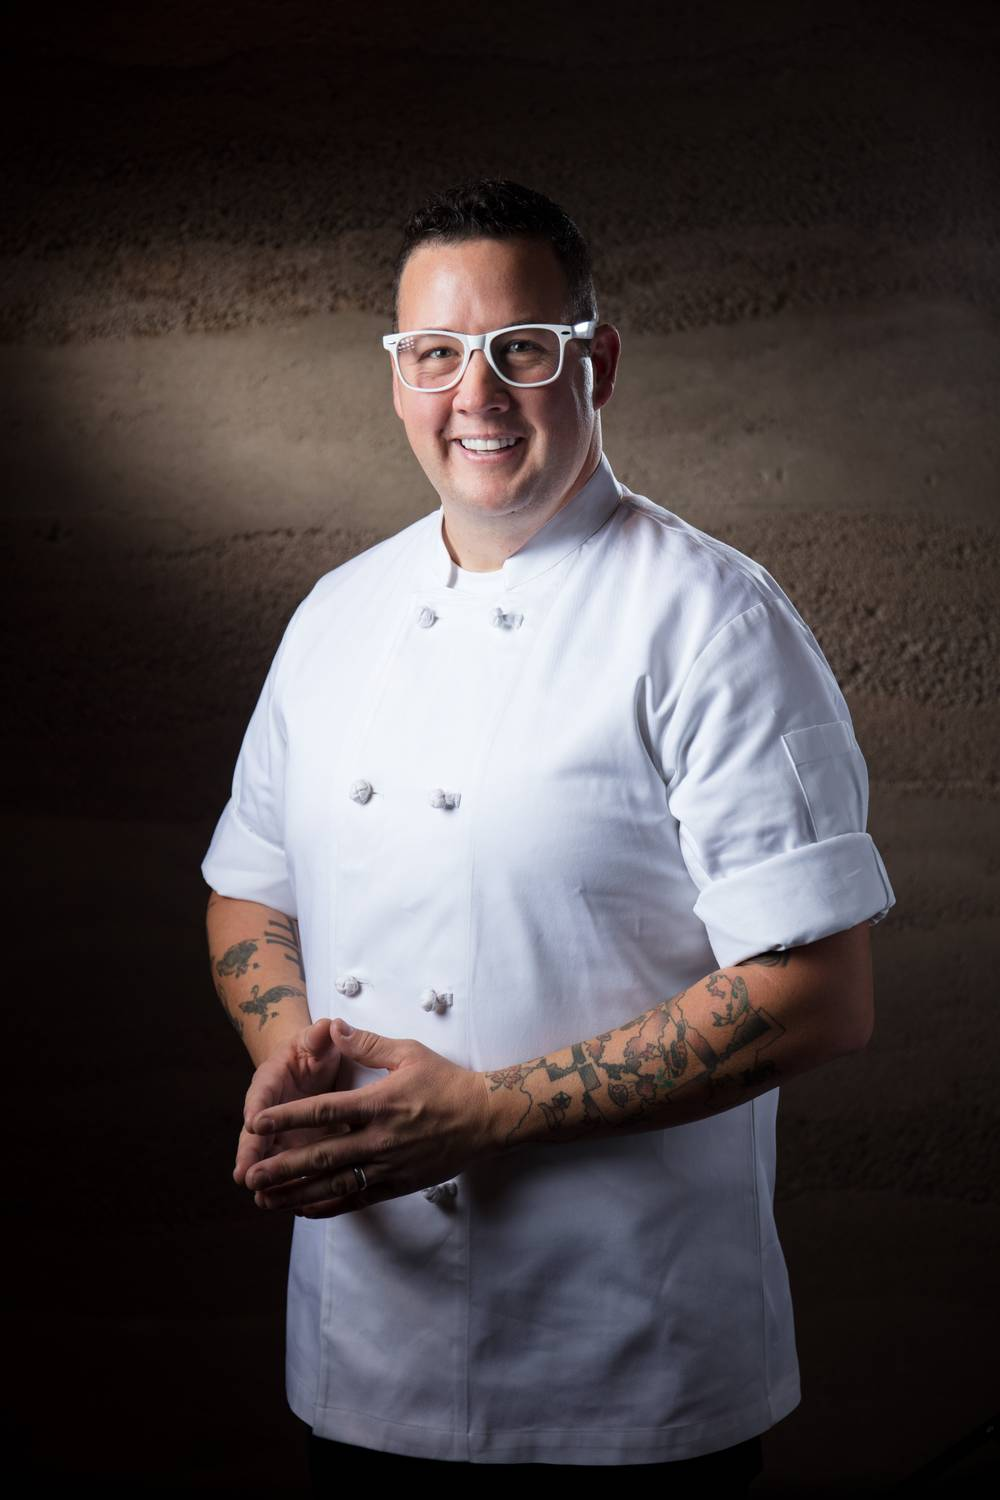 Portrait_Chef_Graham_Elliot_t1000.jpg